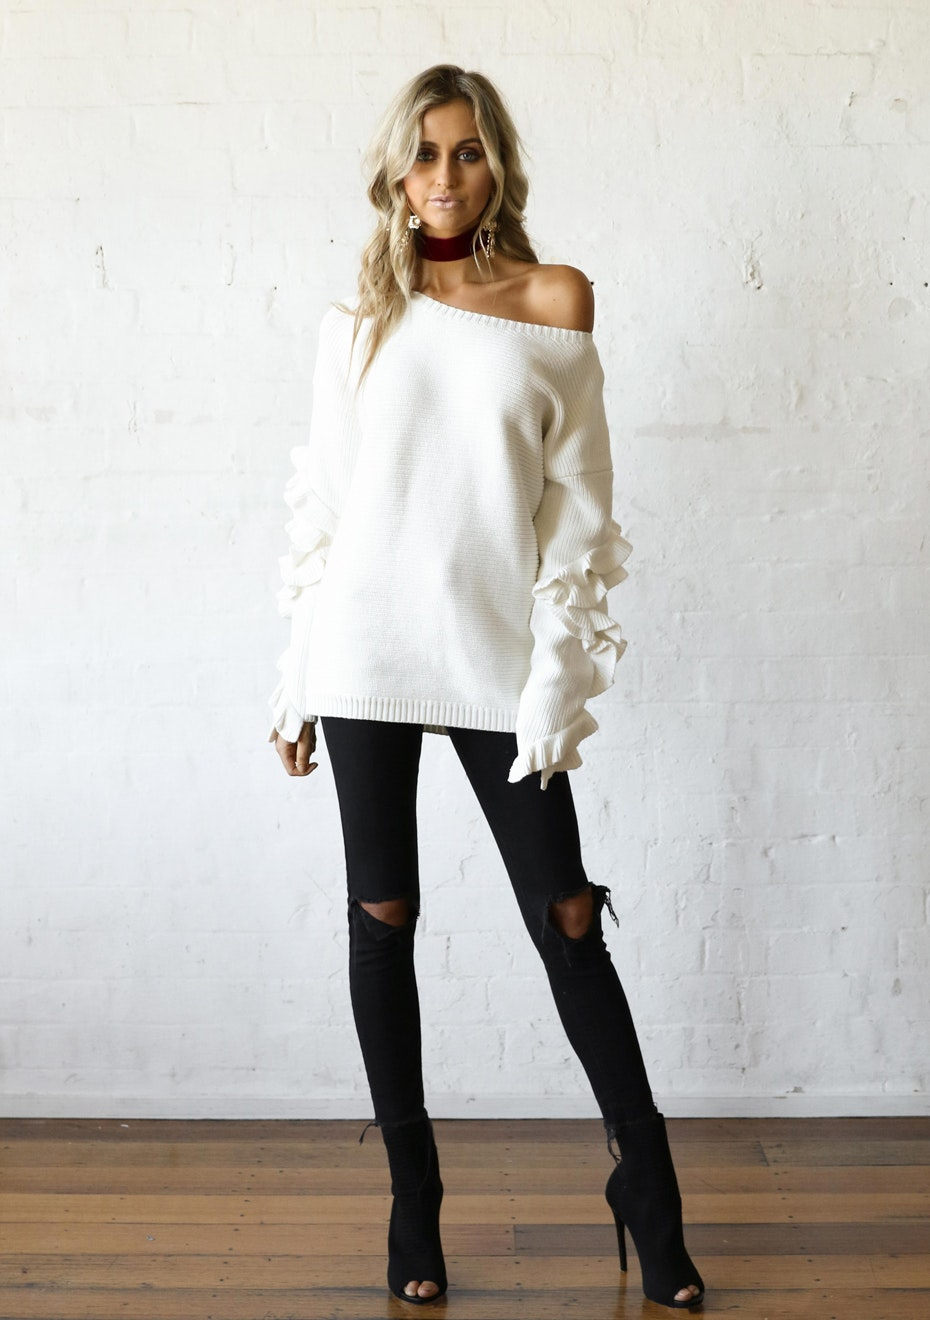 Madison - HADID RUFFLE KNIT - WHITE